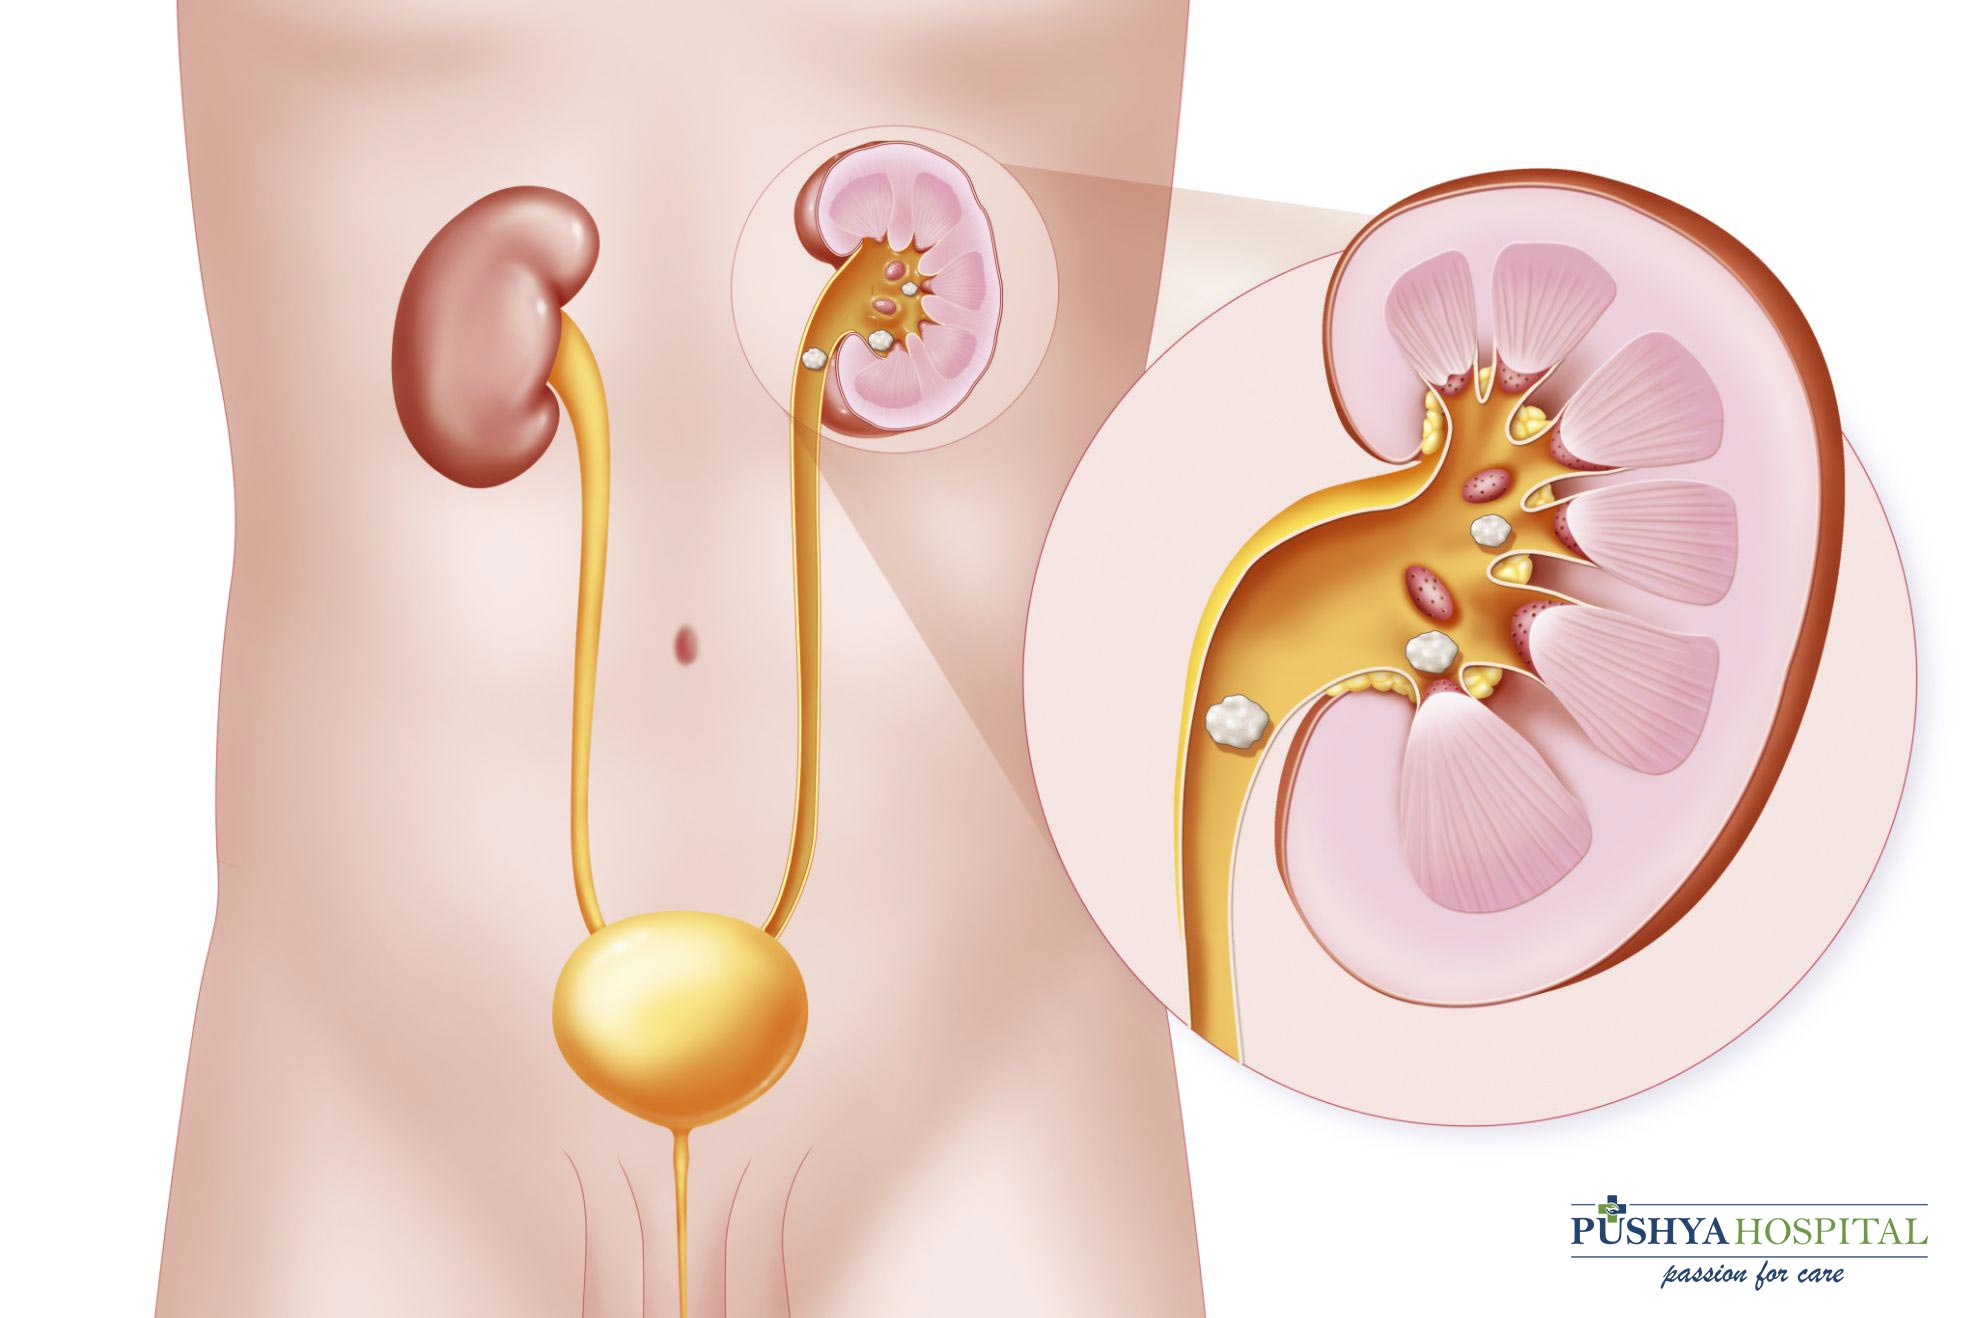 Kidney Stone: Causes, Symptoms & Treatment For The Urologic Patient